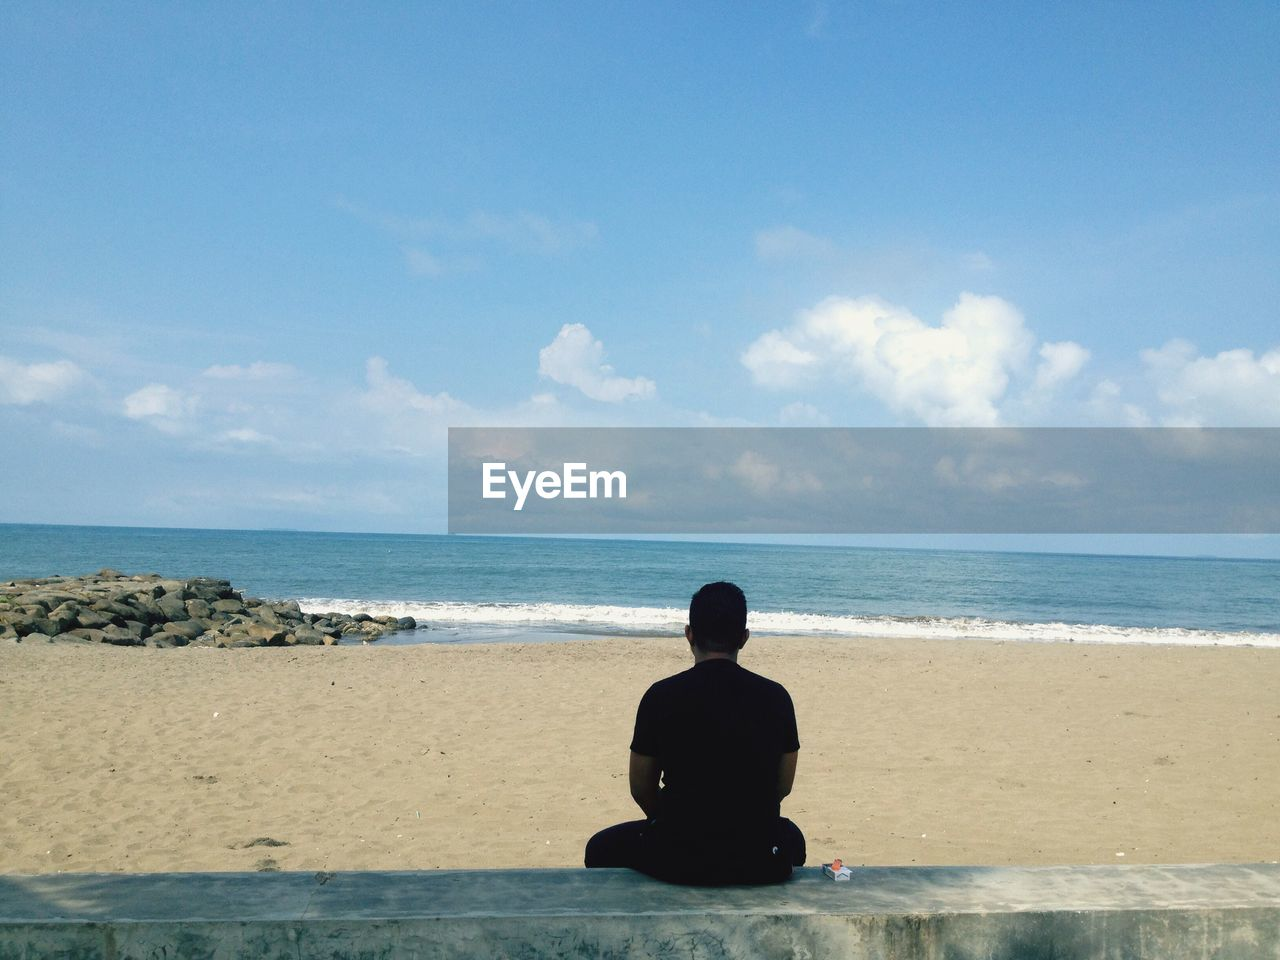 sea, water, sky, beach, land, horizon, horizon over water, sitting, one person, rear view, beauty in nature, scenics - nature, men, real people, nature, cloud - sky, lifestyles, leisure activity, outdoors, contemplation